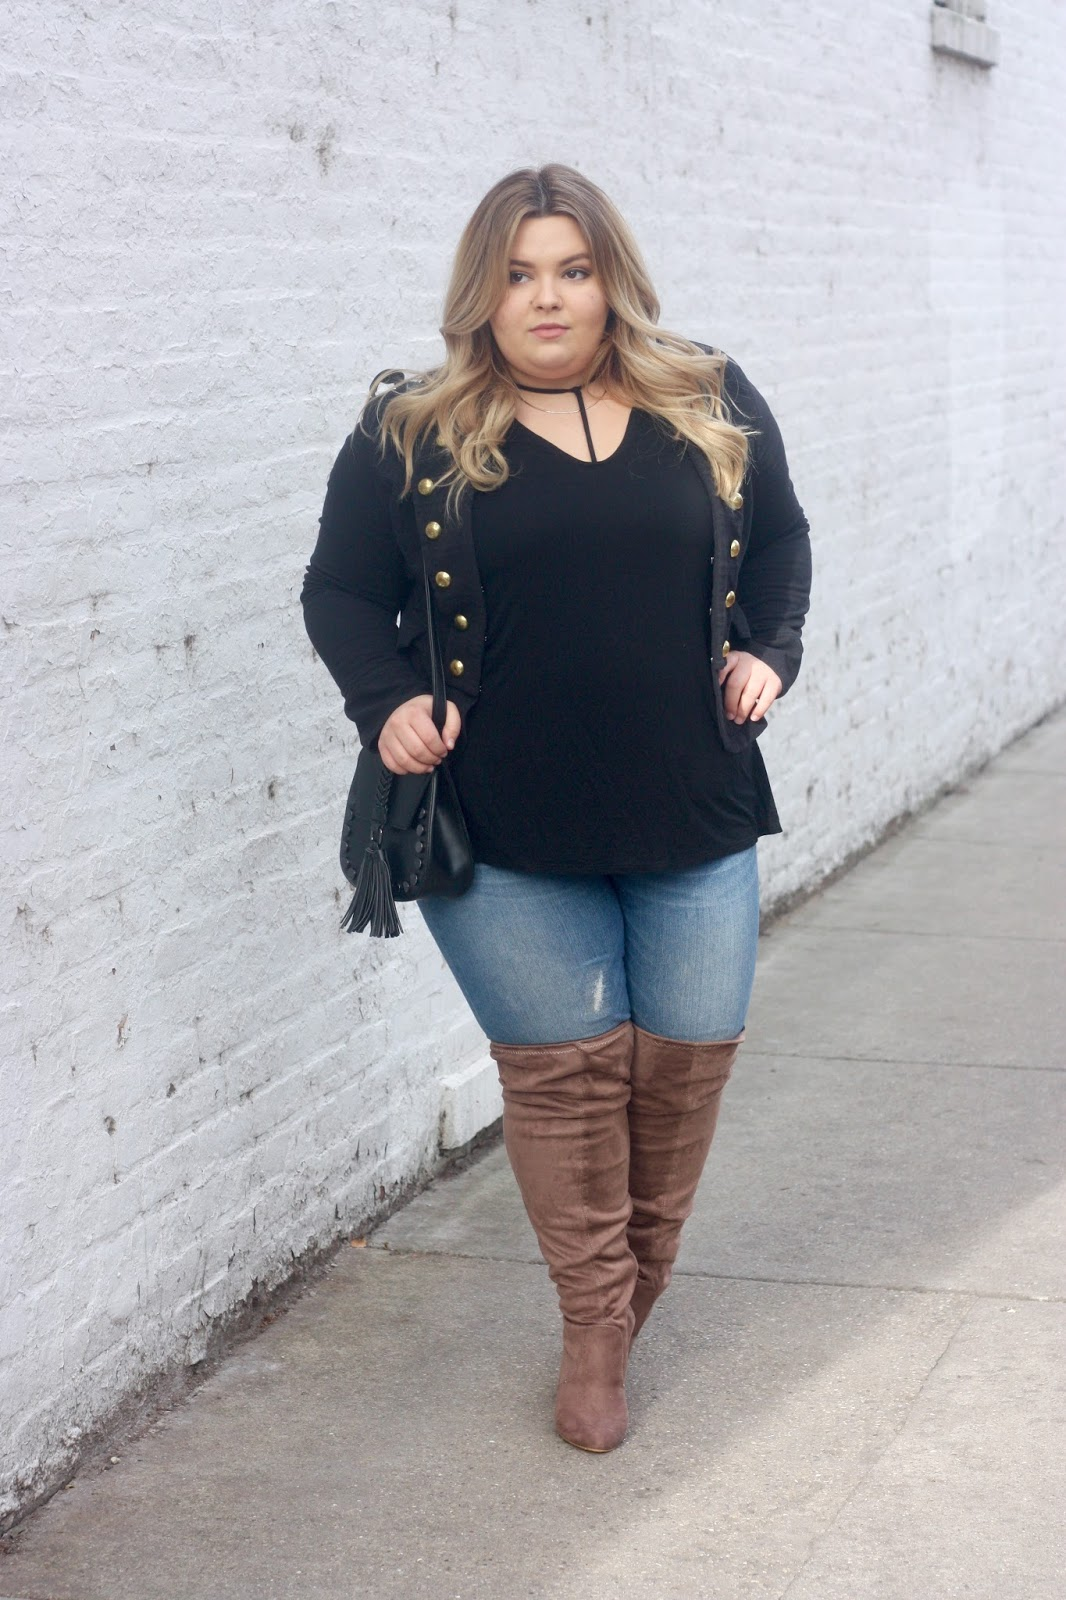 natalie craig, natalie in the city, plus size fashion, military style jacket, thigh high wide calf boots, knee high wide calf boots, faux suede boots, plus size blogger, mossimo target denim, ootd, chicago blogger, midwest, street style